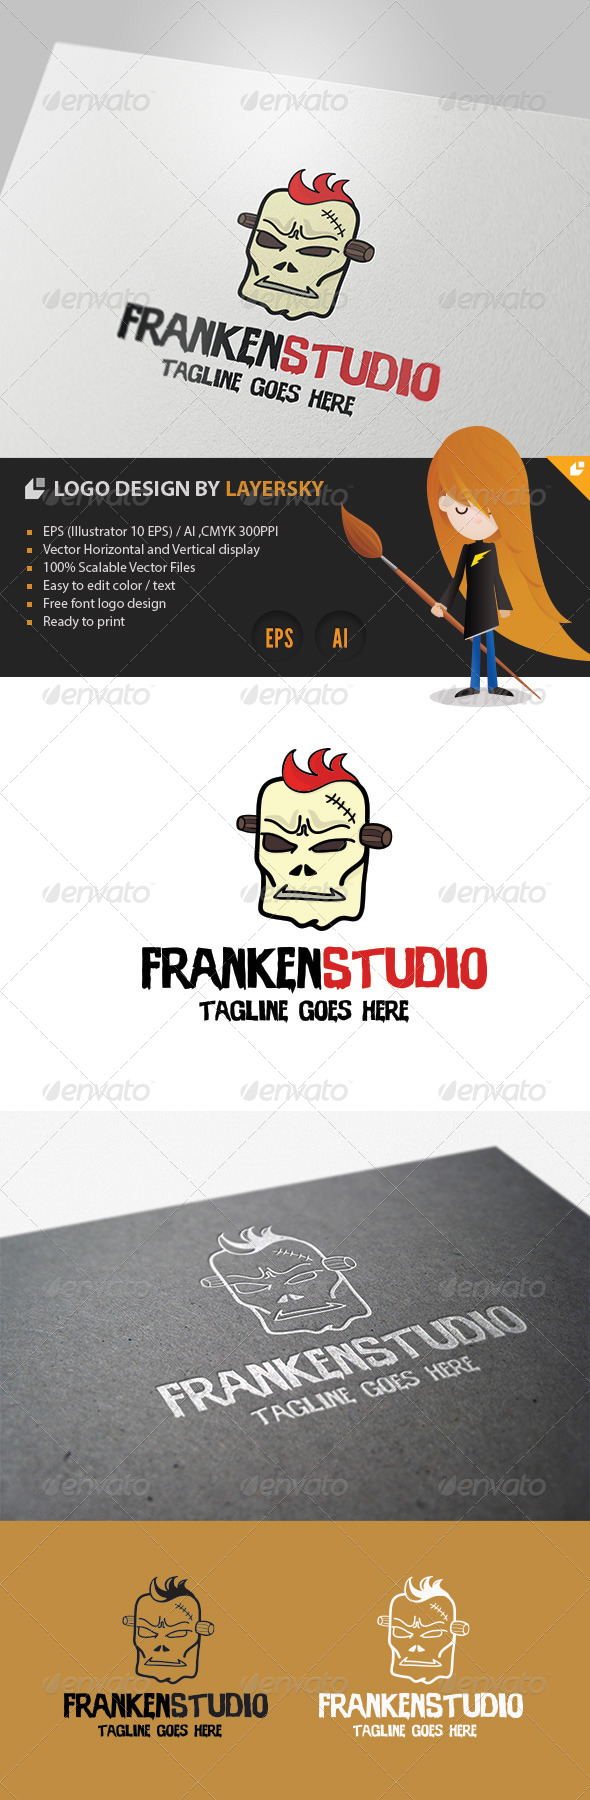 Franken Studio Logo - Vector Abstract